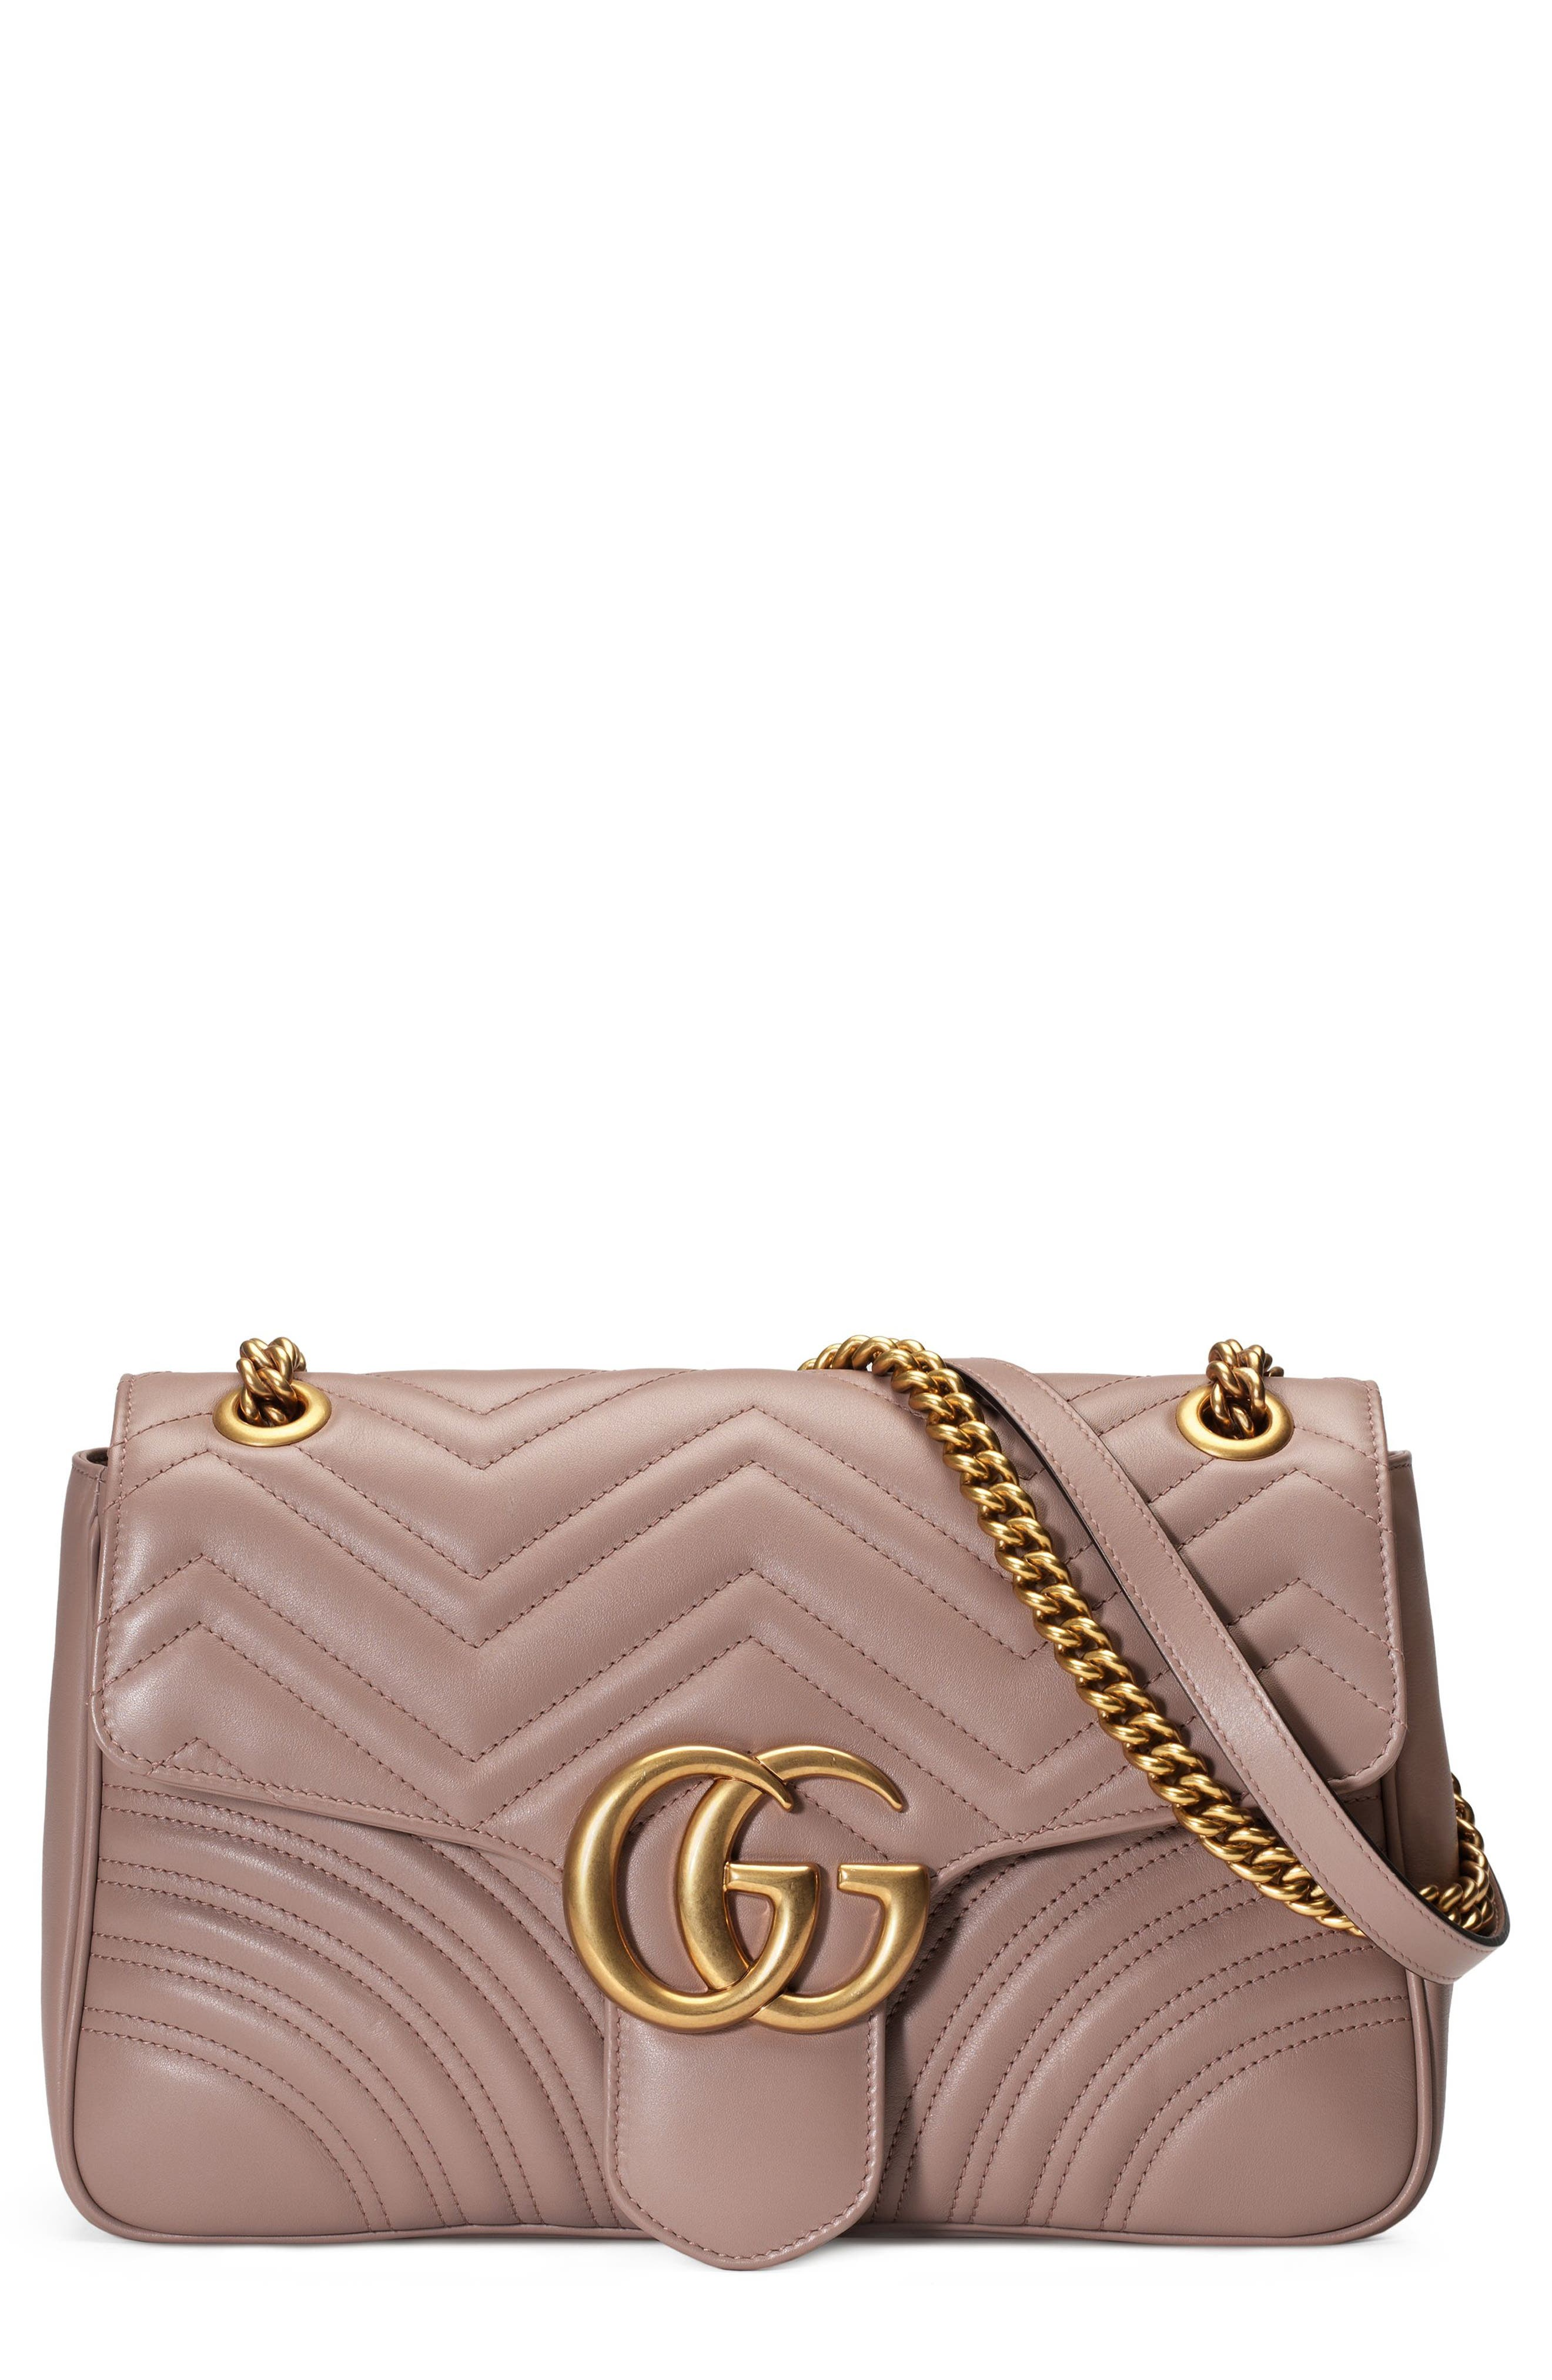 Medium GG Marmont 2.0 Matelassé Leather Shoulder Bag,                         Main,                         color, PORCELAIN ROSE/ PORCELAIN ROSE